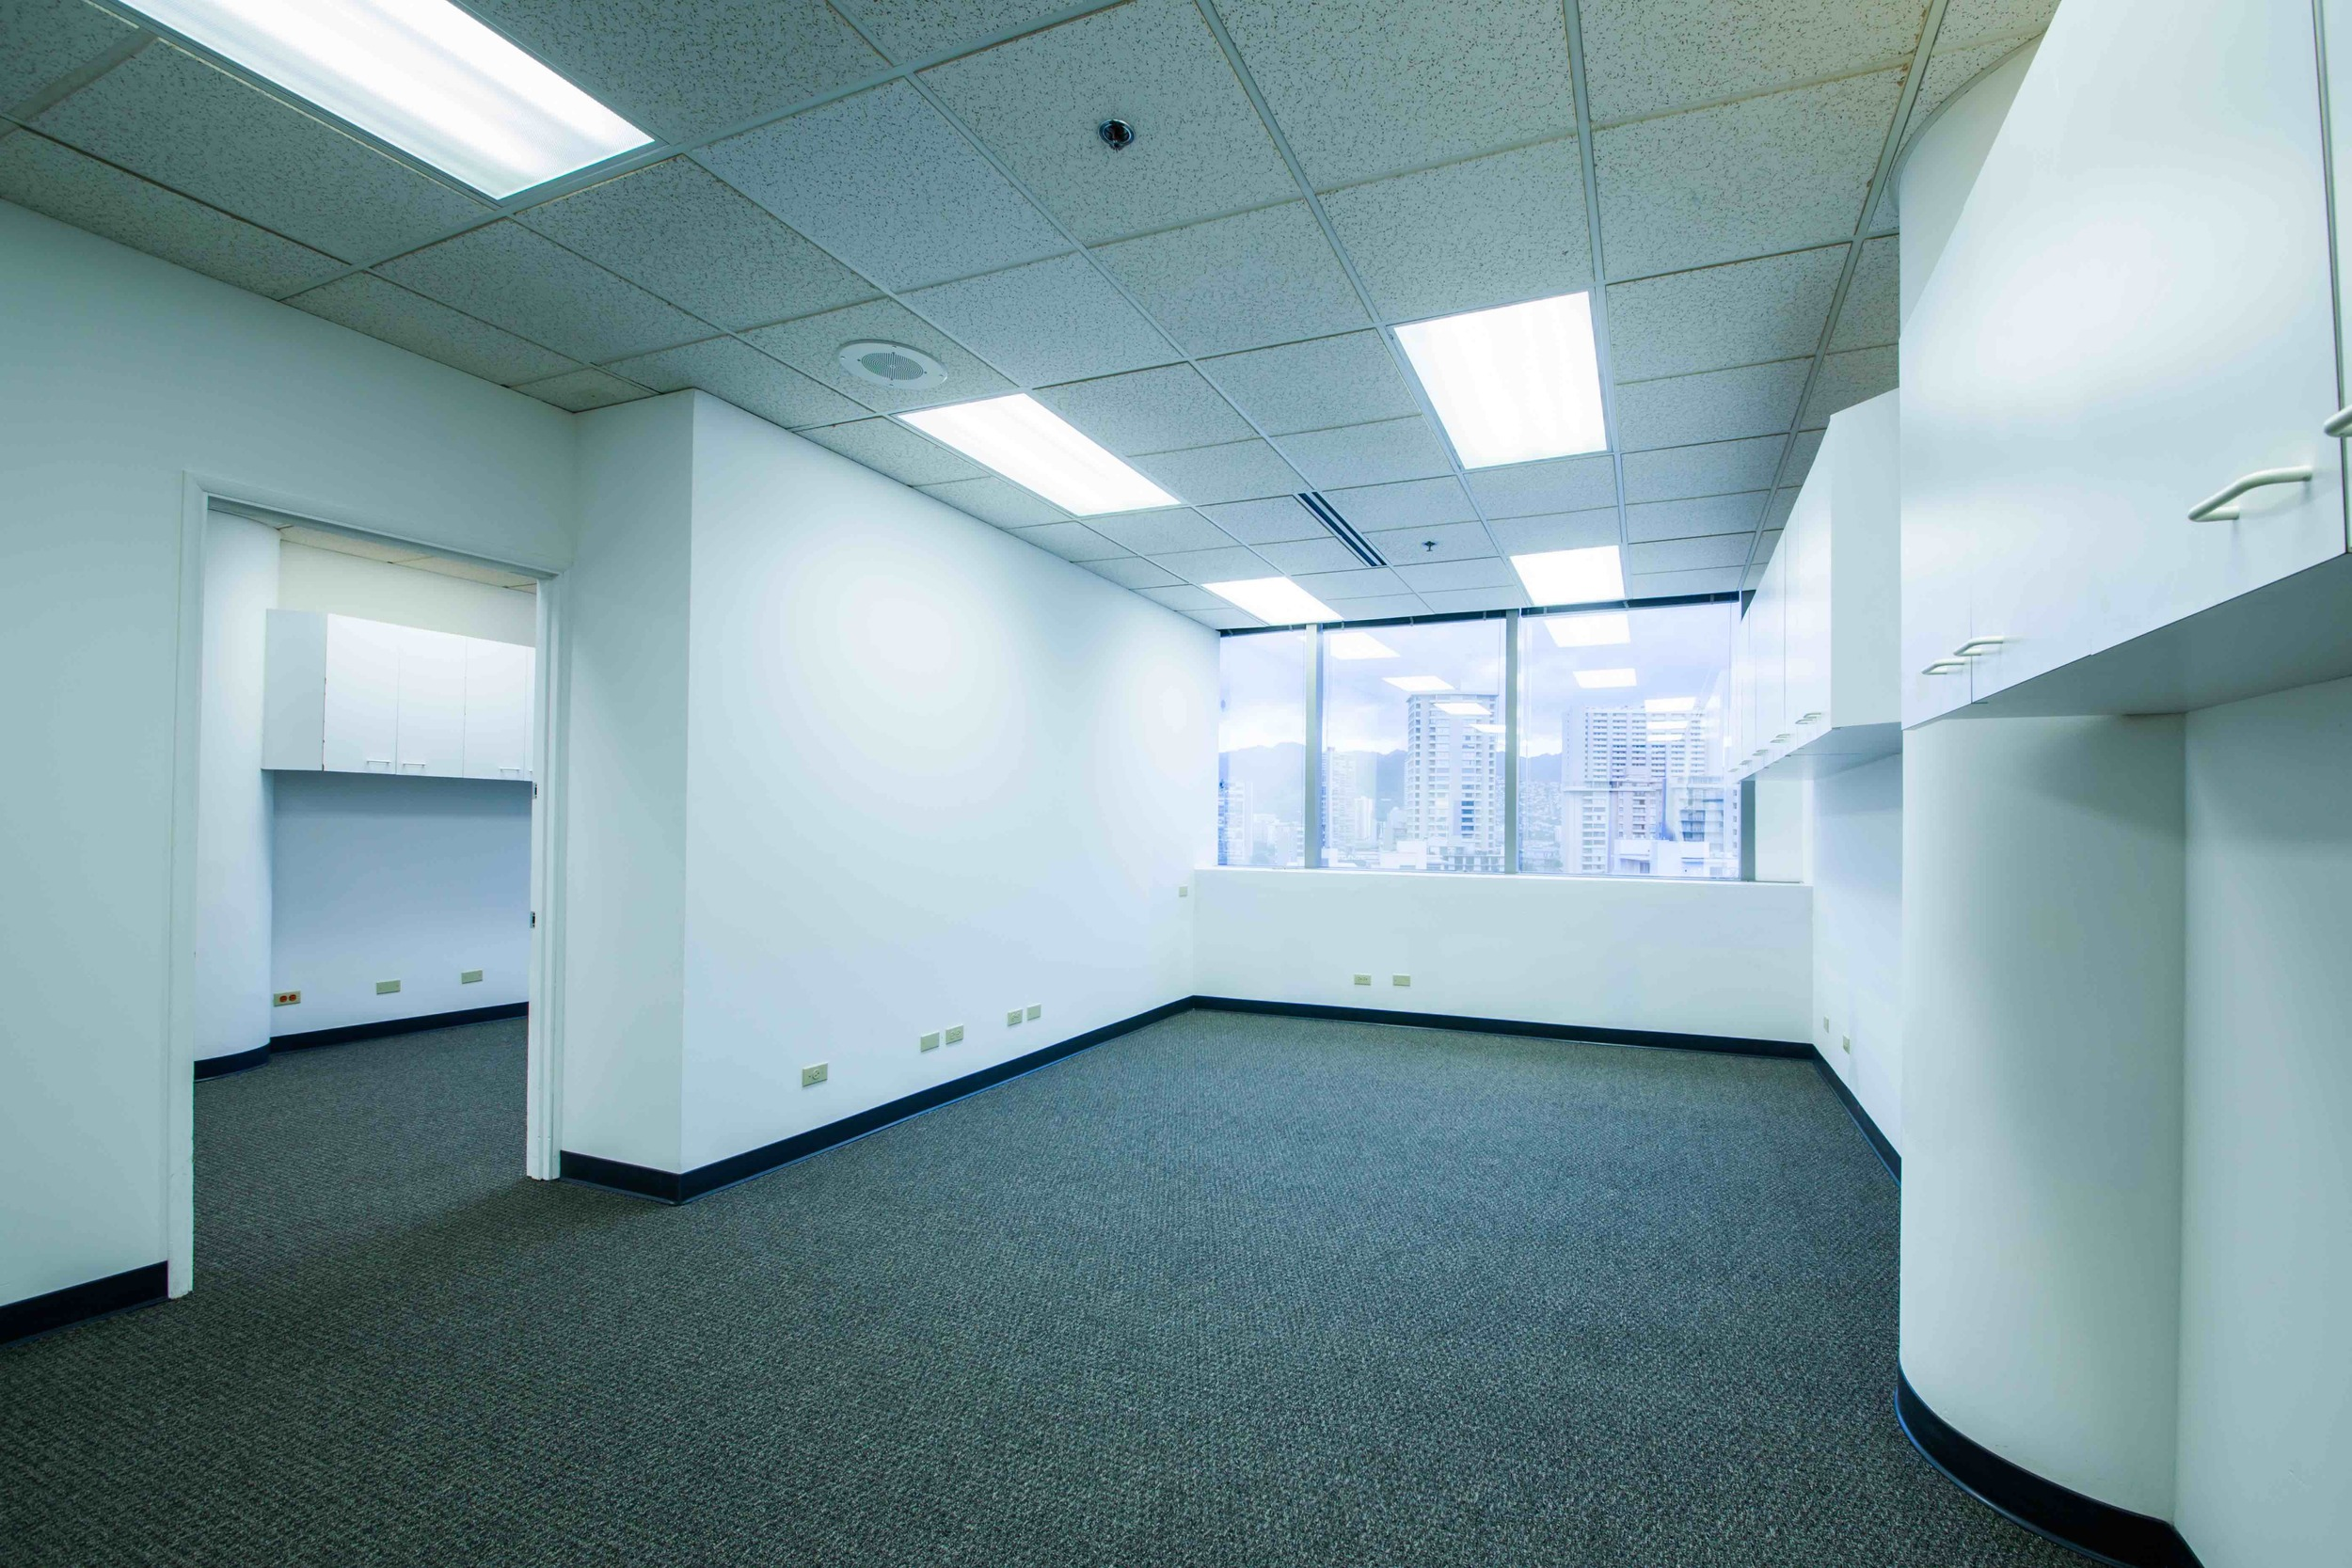 Suite is divided into two parts with an interior connecting door for flexible configuration.  Each area of the office has an independent hallway door for separate entrances into the suite. Wall to wall window views of Kalakaua Avenue.